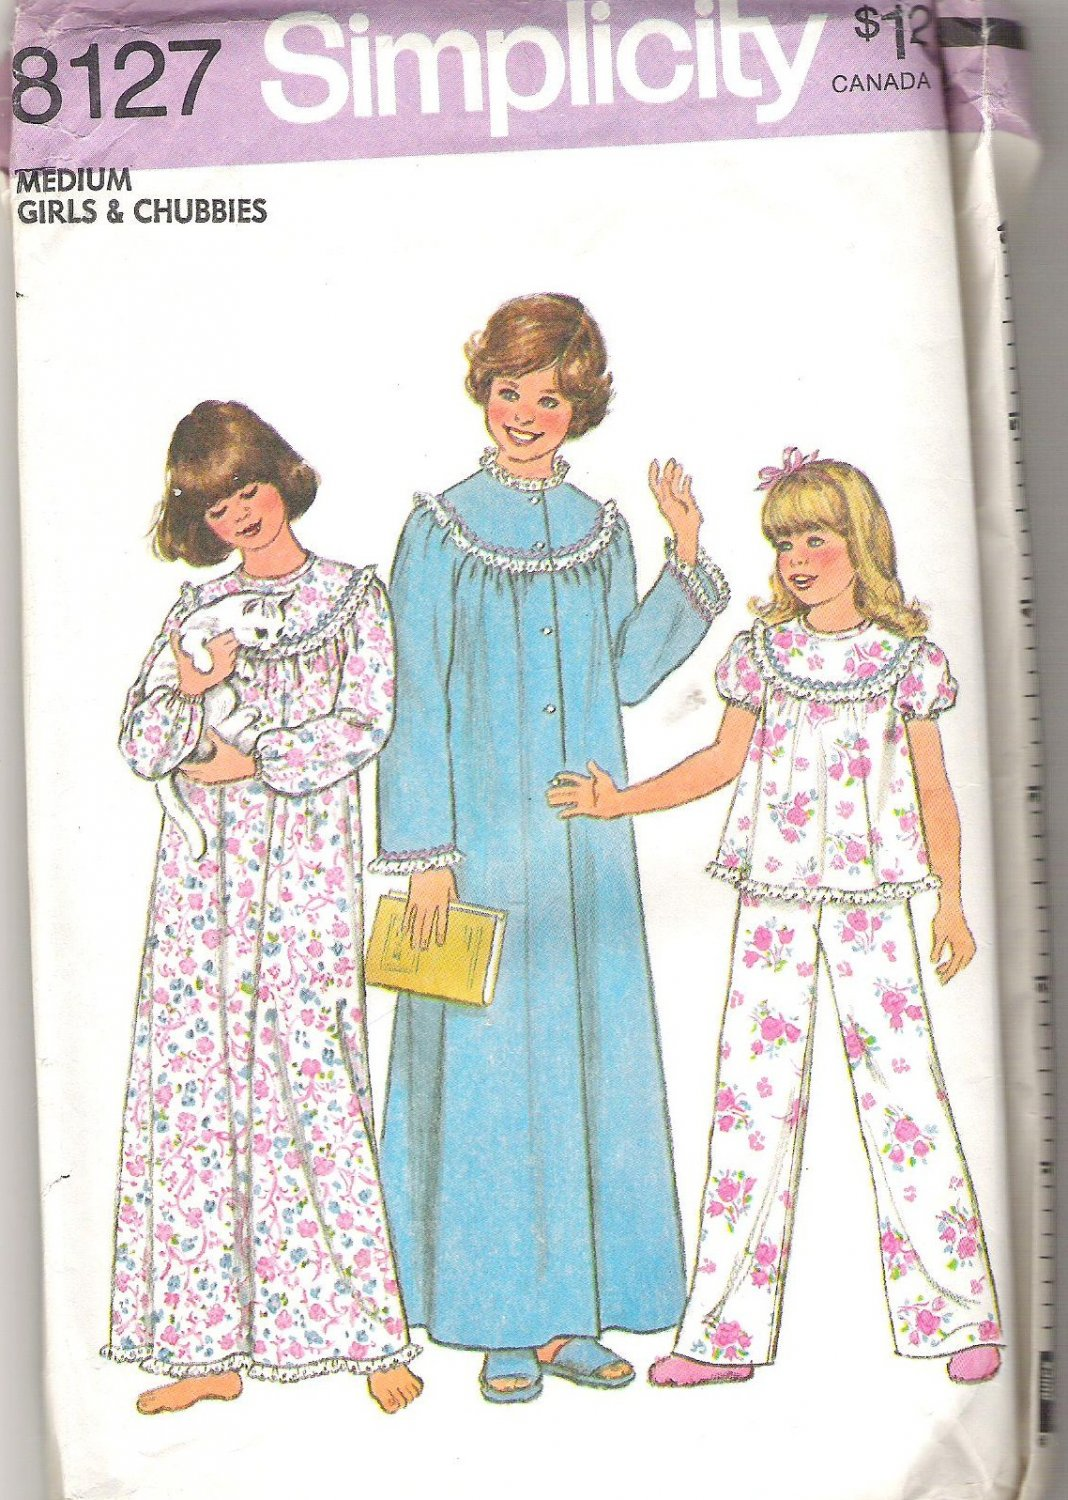 1977 Simplicity 8127 Pattern Girls and Chubbies Nightgown, Pajamas and Robe  Size M  Uncut